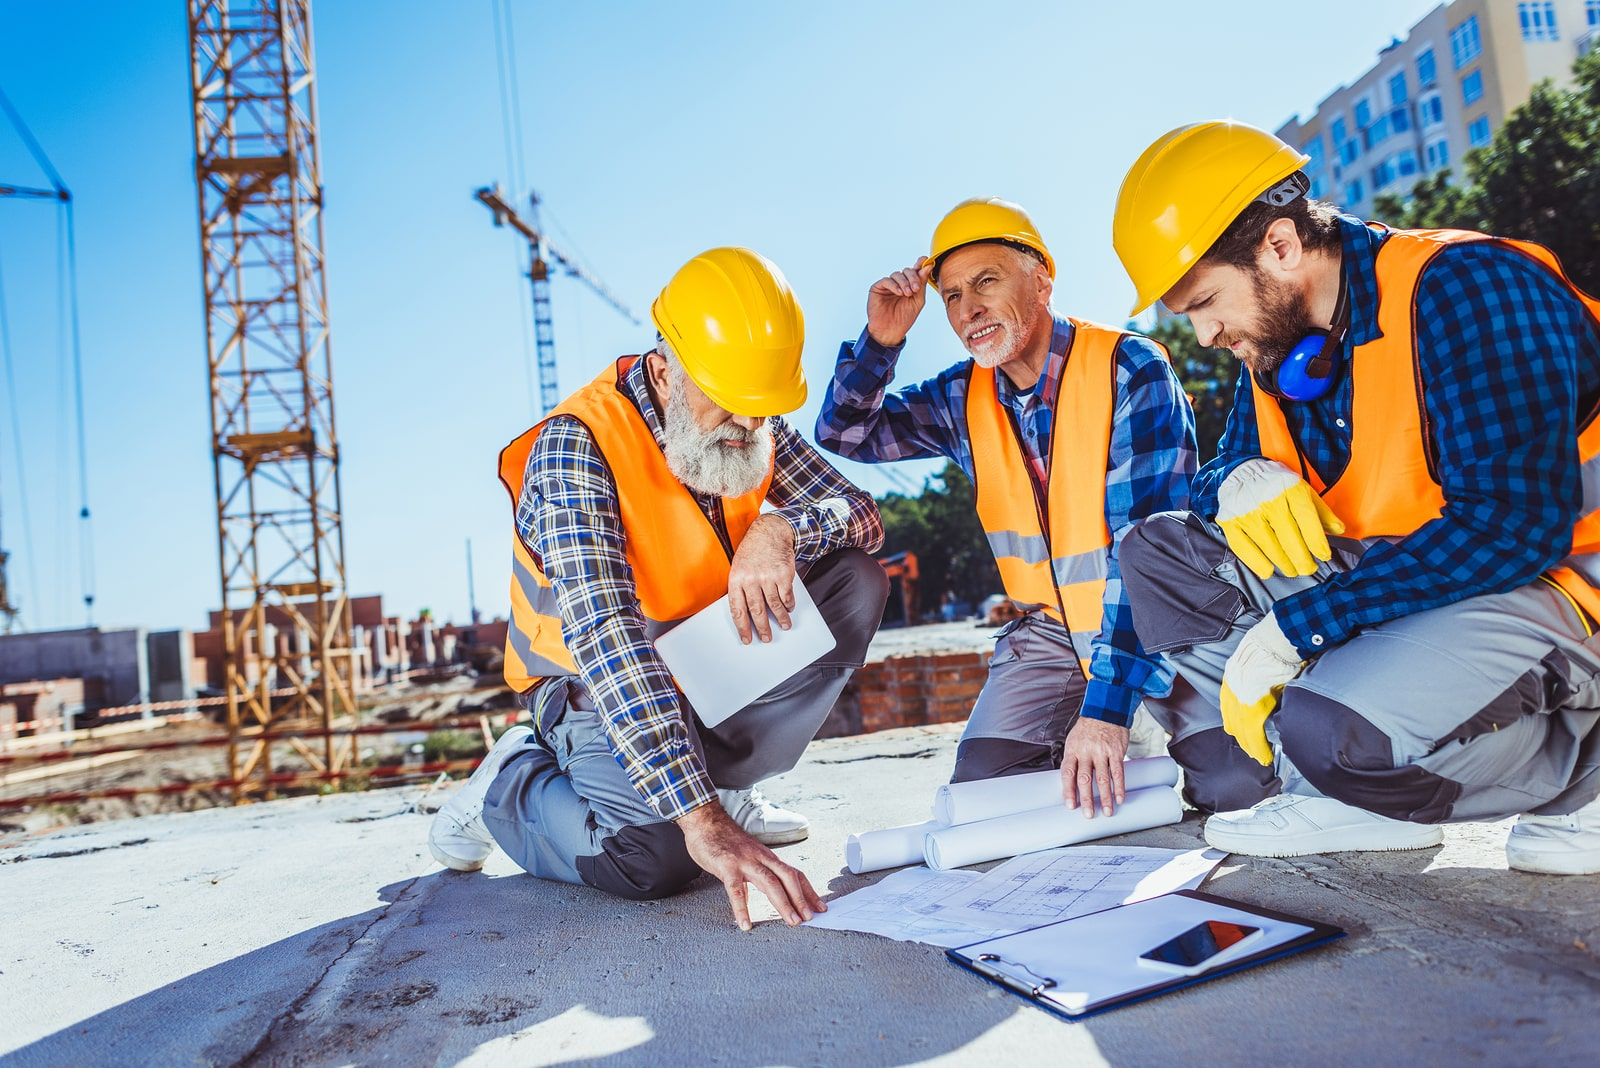 Three construction workers in uniform sitting on concrete at construction site examining building plans